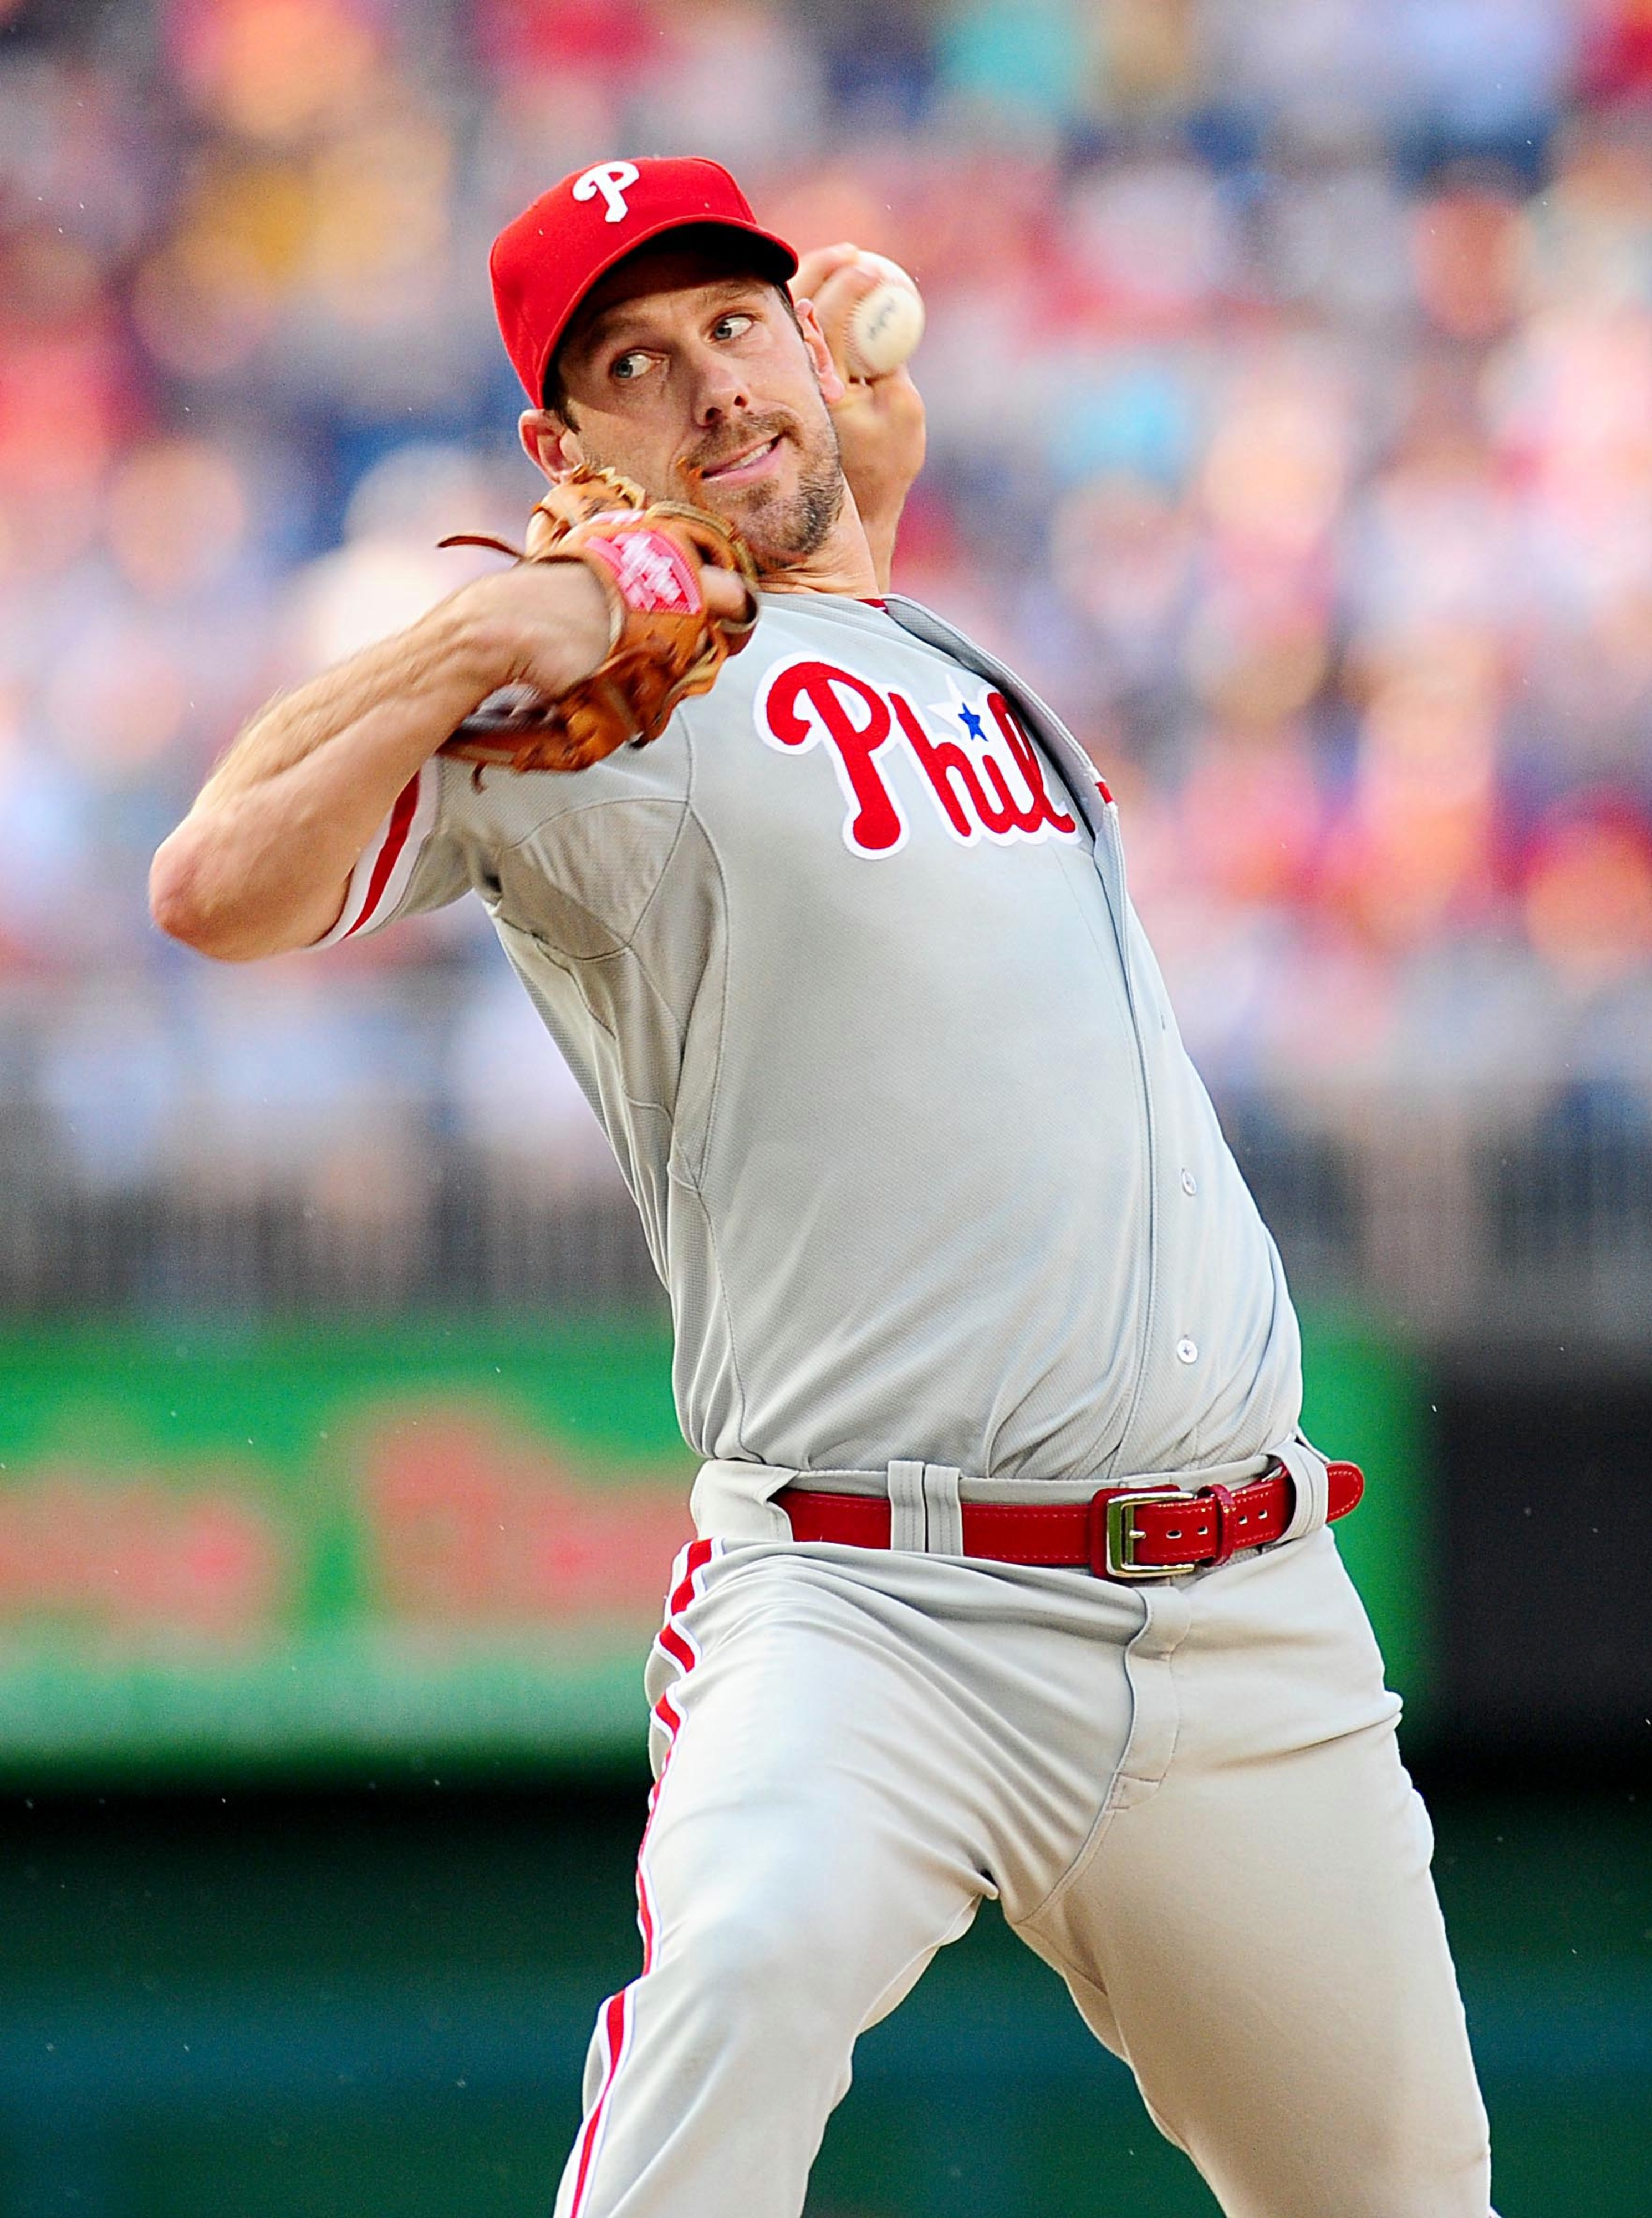 July 31, 2012; Washington, DC, USA; Philadelphia Phillies pitcher Cliff Lee (33) throws a pitch during the game against the Washington Nationals at Nationals Park. Mandatory Credit: Evan Habeeb-US PRESSWIRE